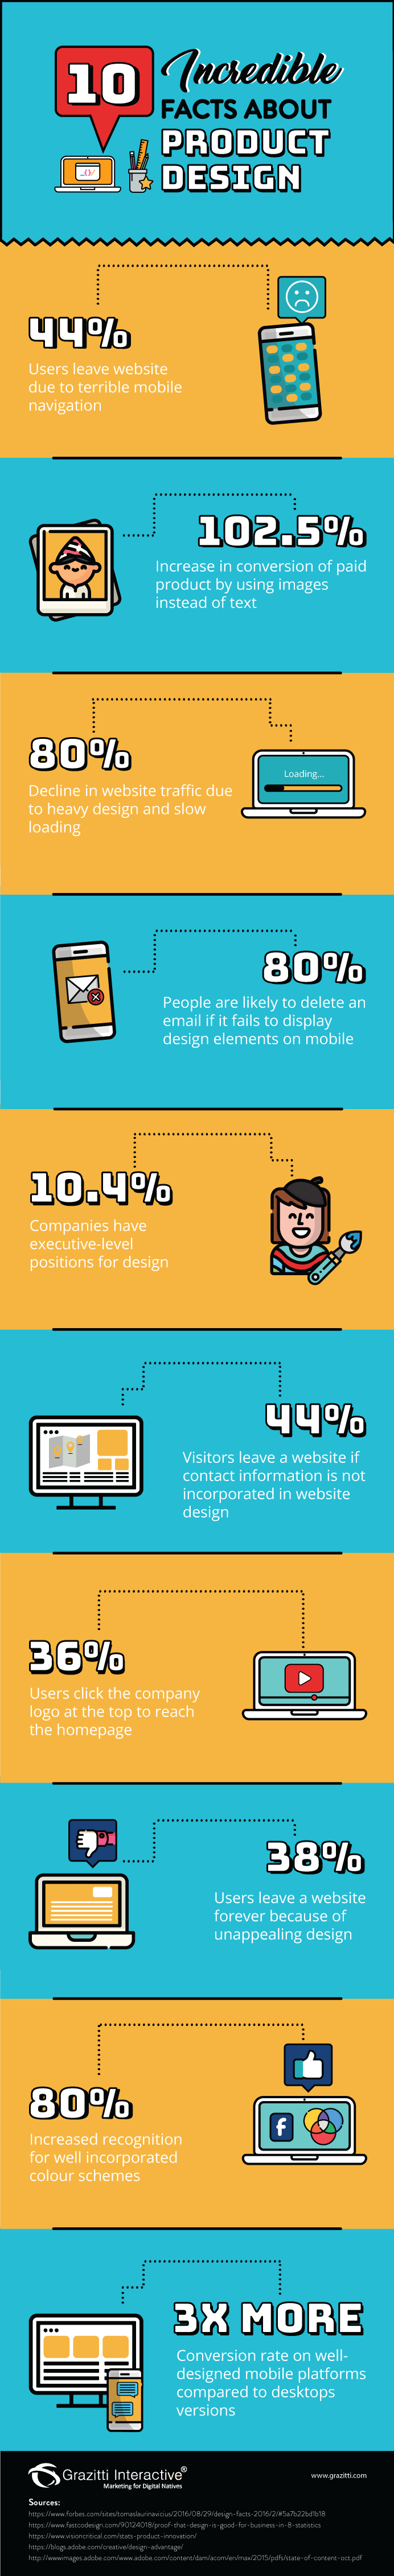 10 Incredible Facts About Product Design #Infographic